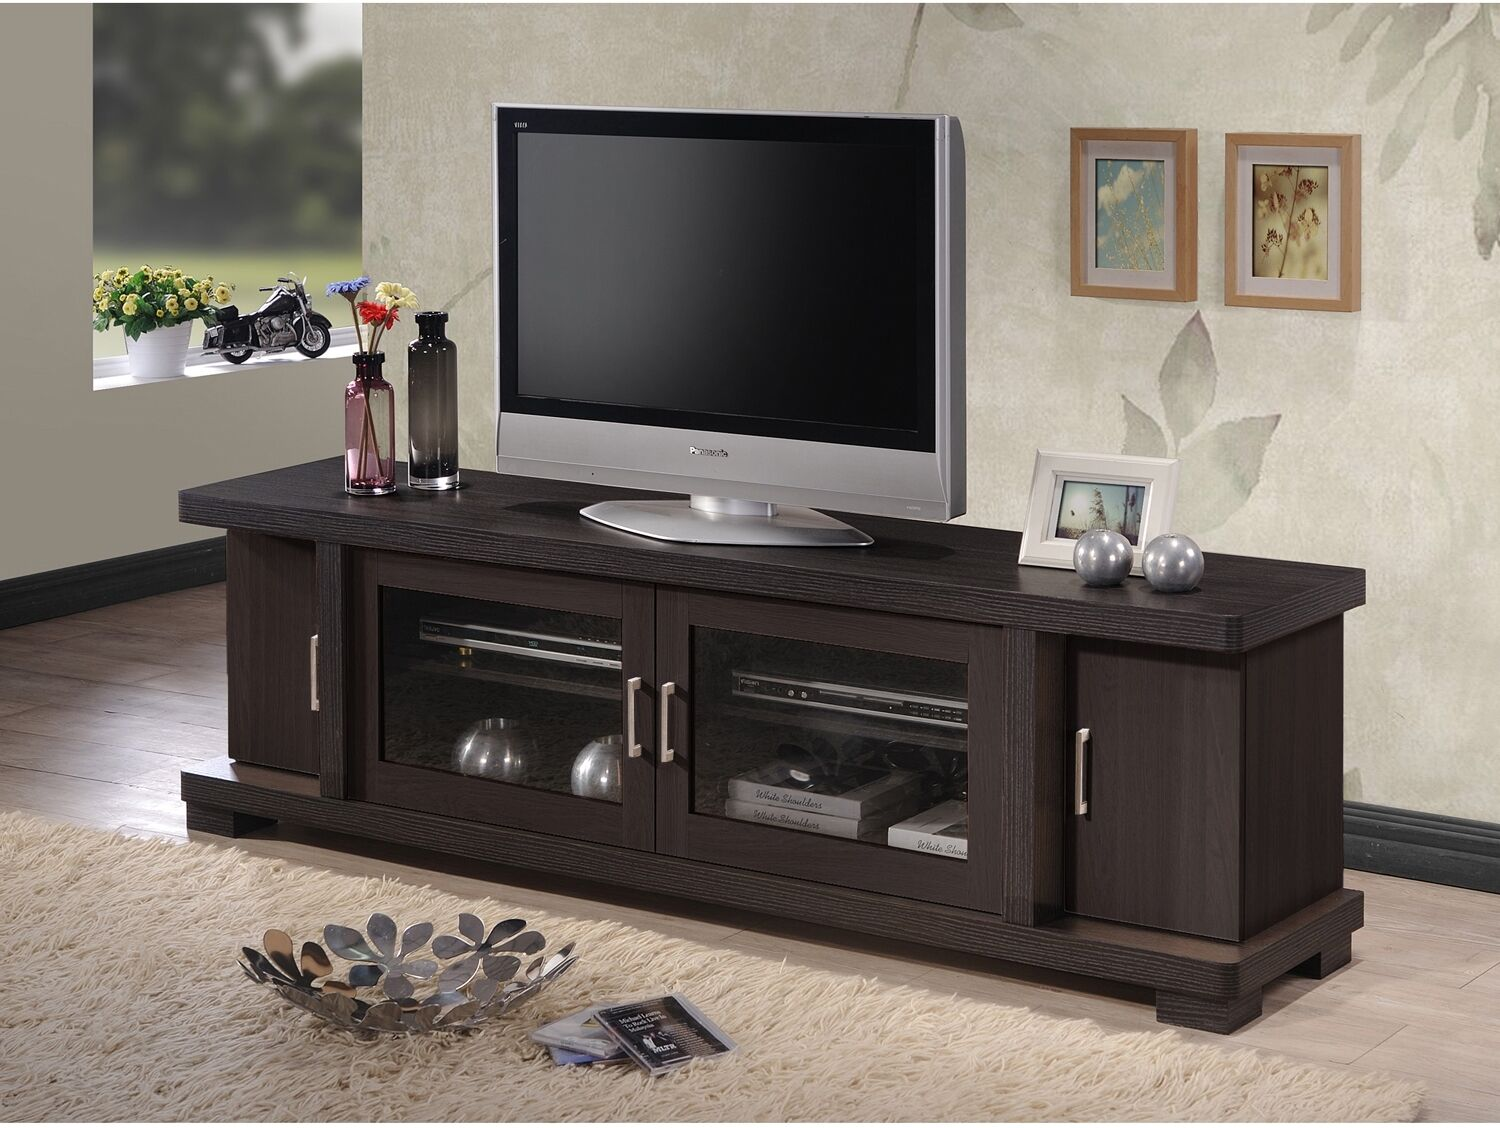 Wood TV Console 70-Inch Stand Contemporary Entertainment